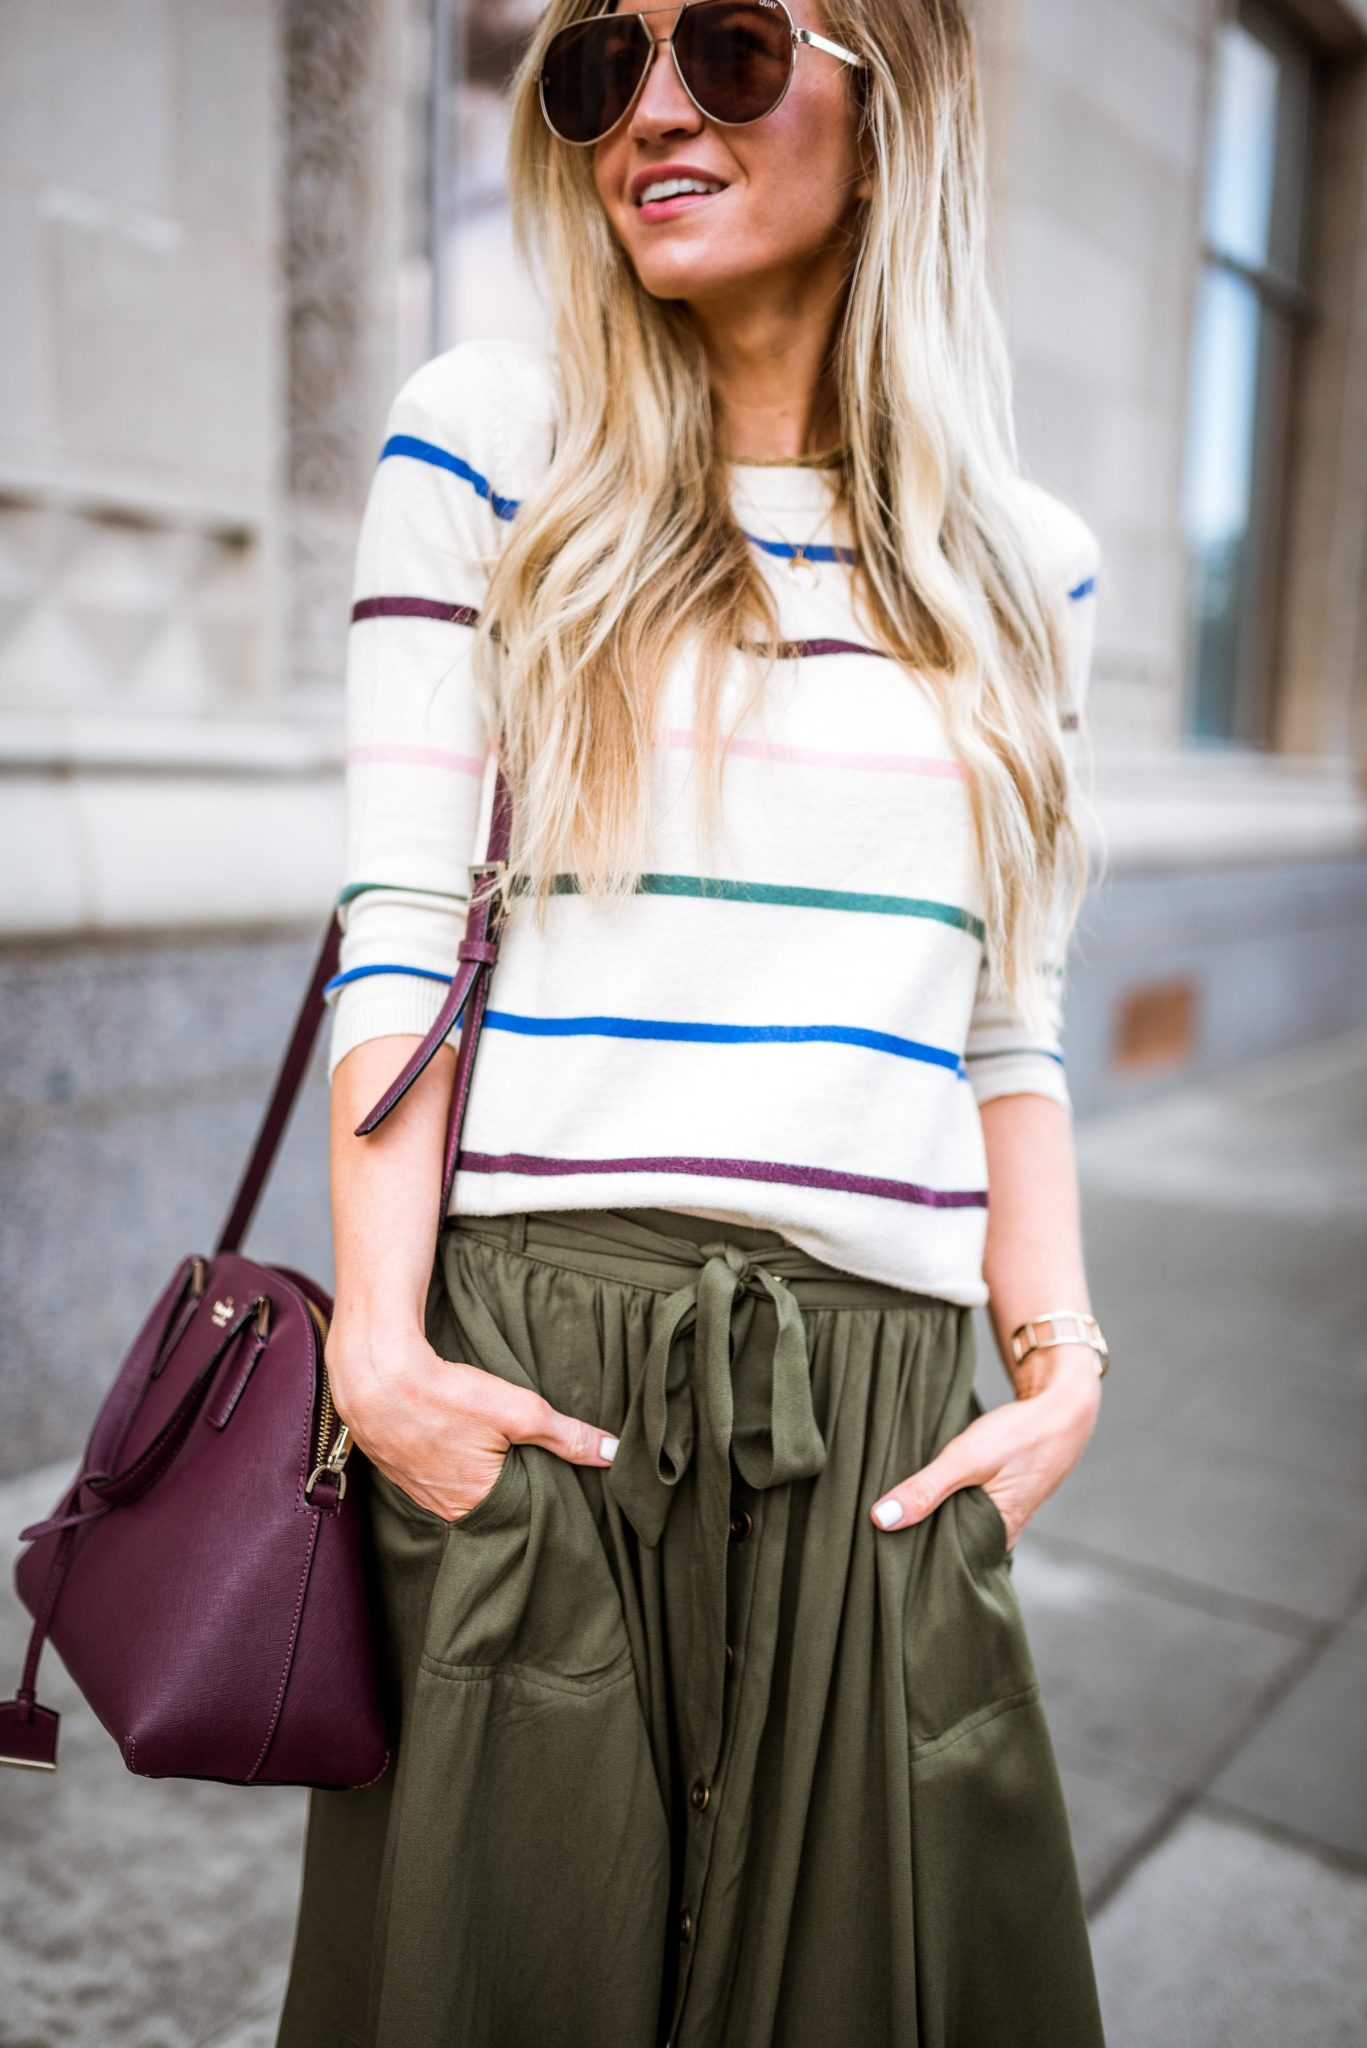 Striped sweater + olive green skirt + quay sunglasses